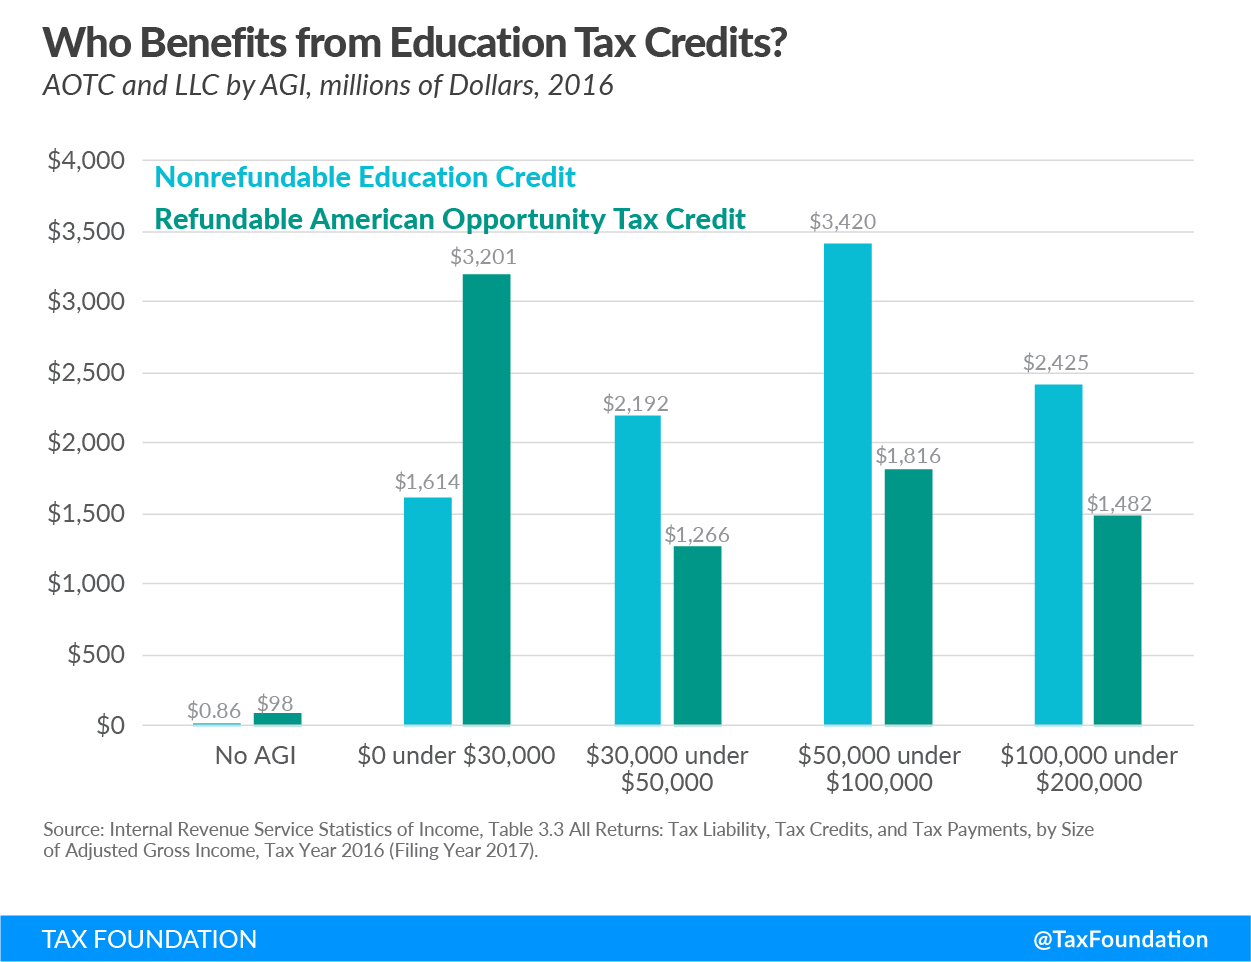 Who benefits from education credits?